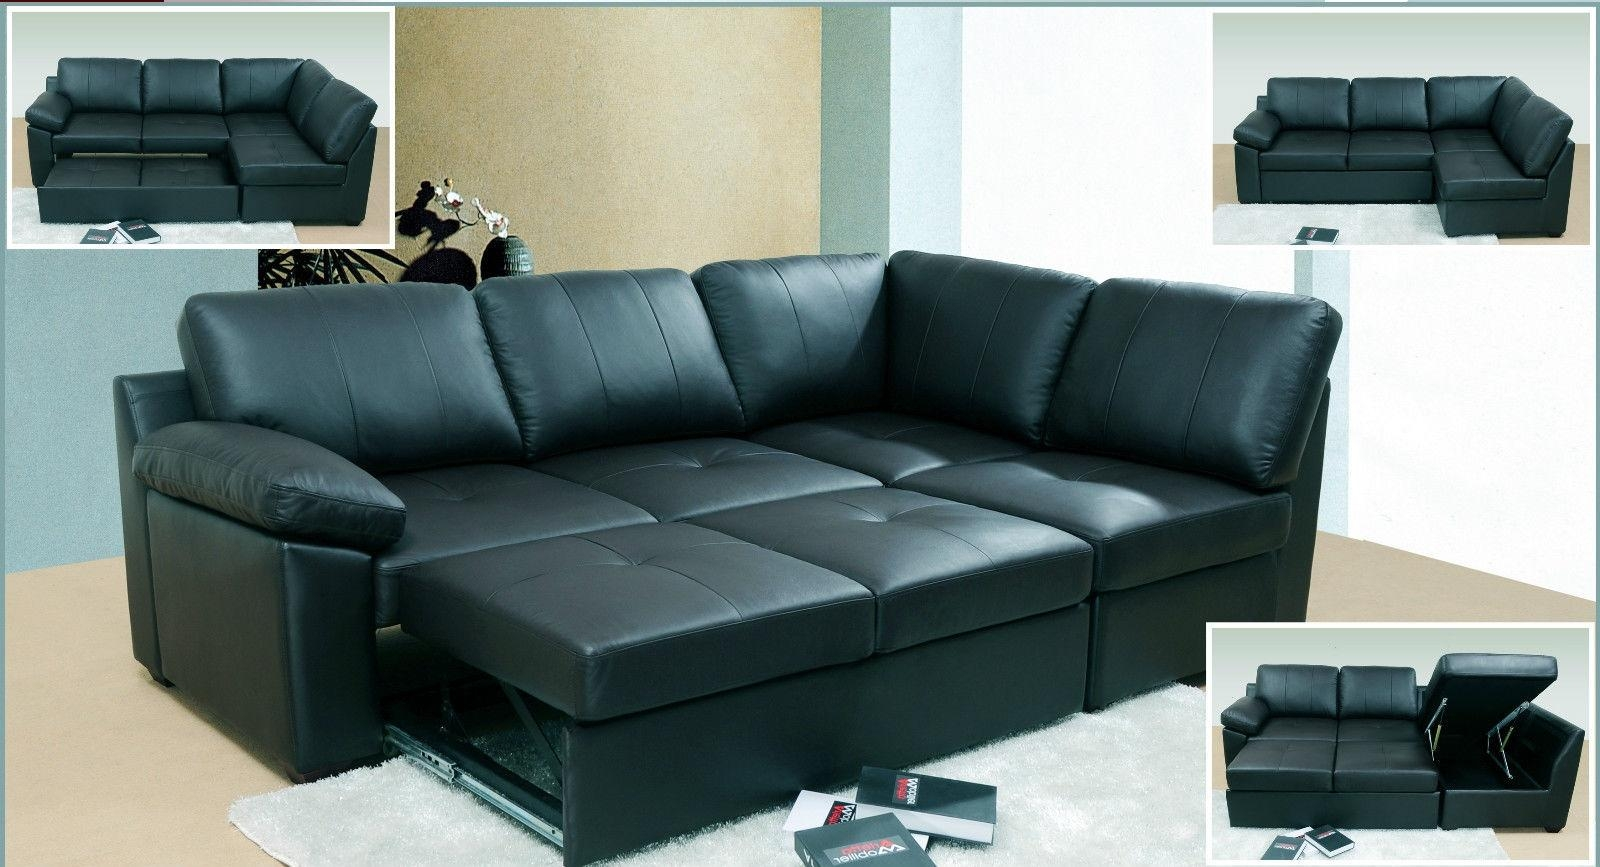 olympus black leather corner sofa bed with storage sofas y sillones com ar 21 ideas of